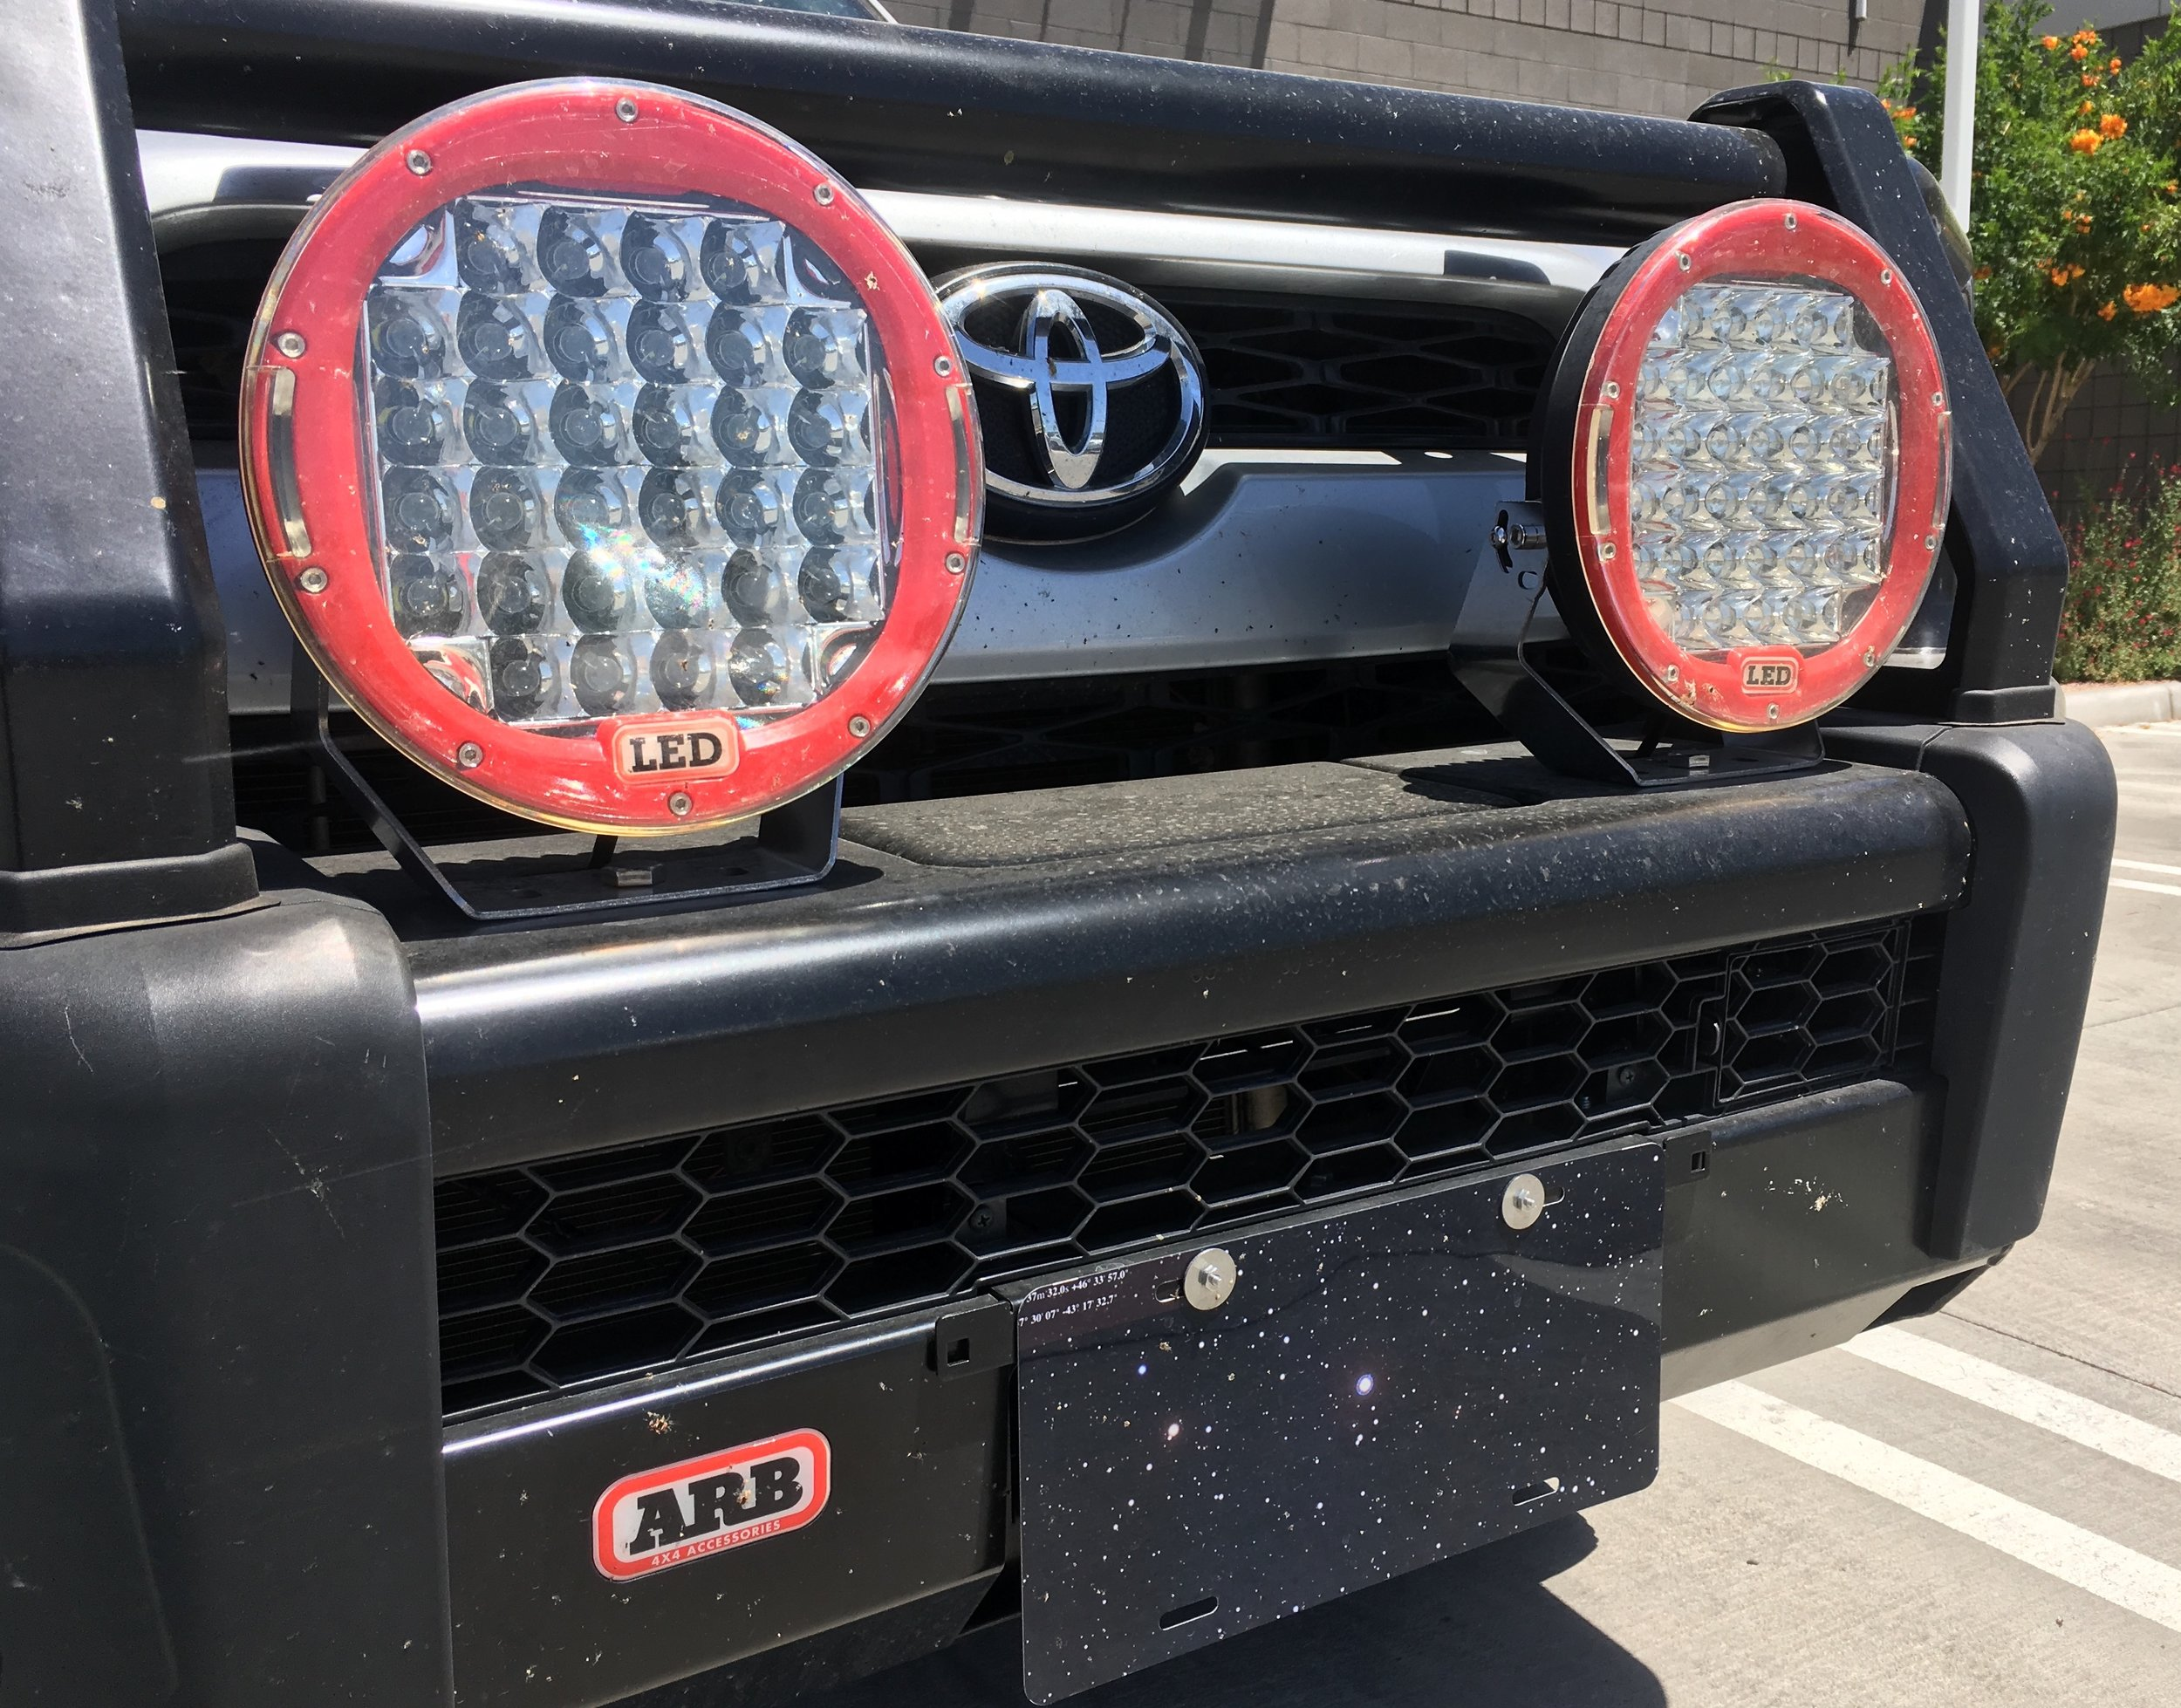 An ARB bumper . . . and ARB driving lamps?